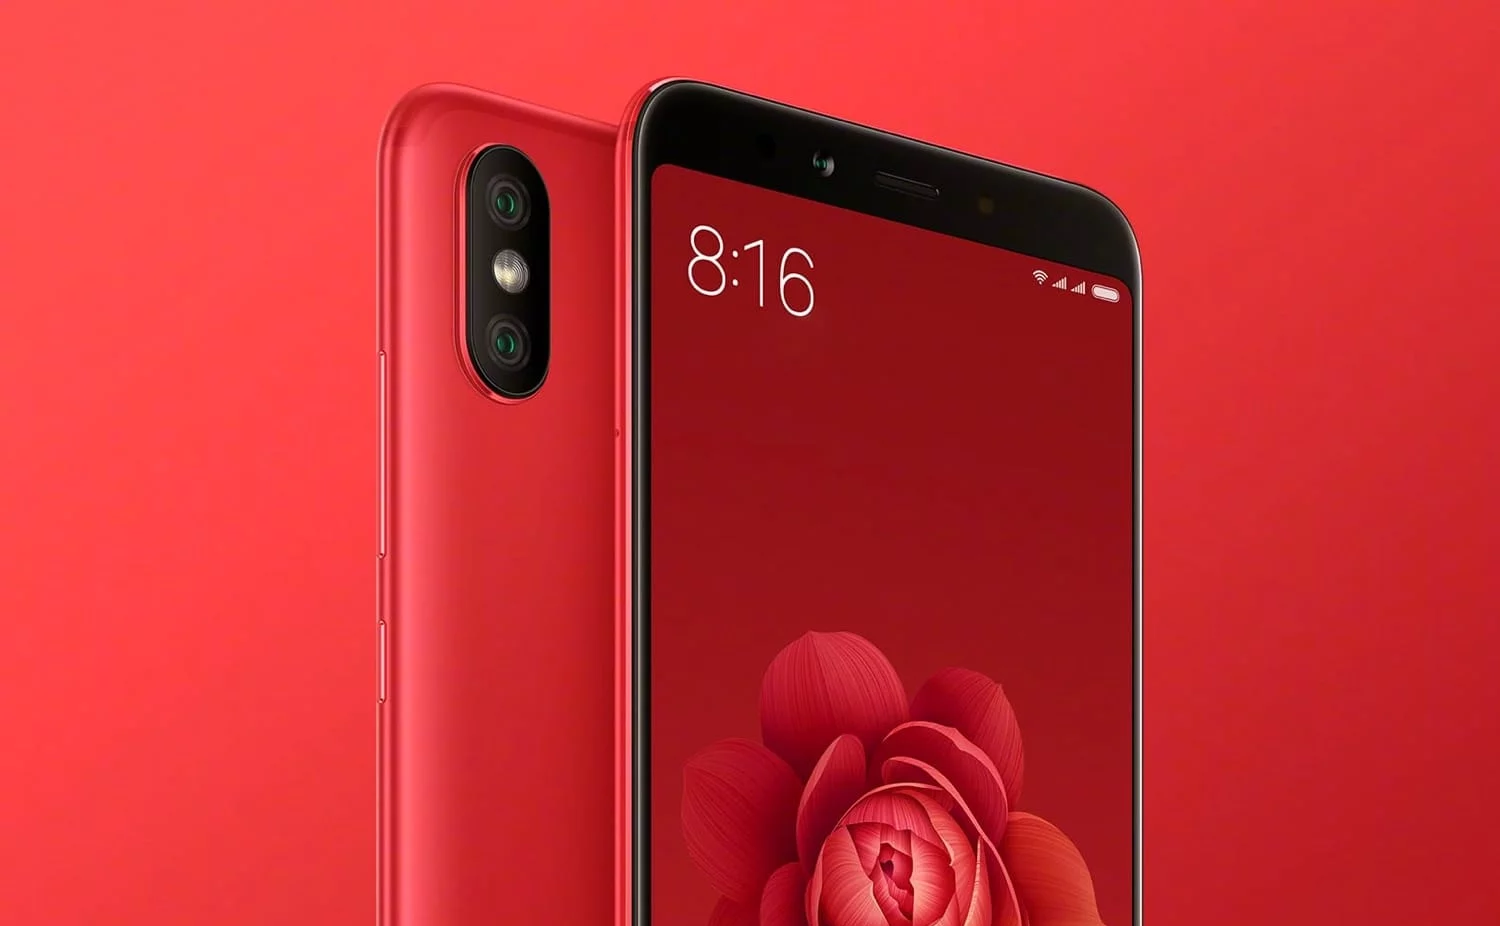 MIUI 10 Global Stable ROM Release for Xiaomi Redmi Y2 - Make